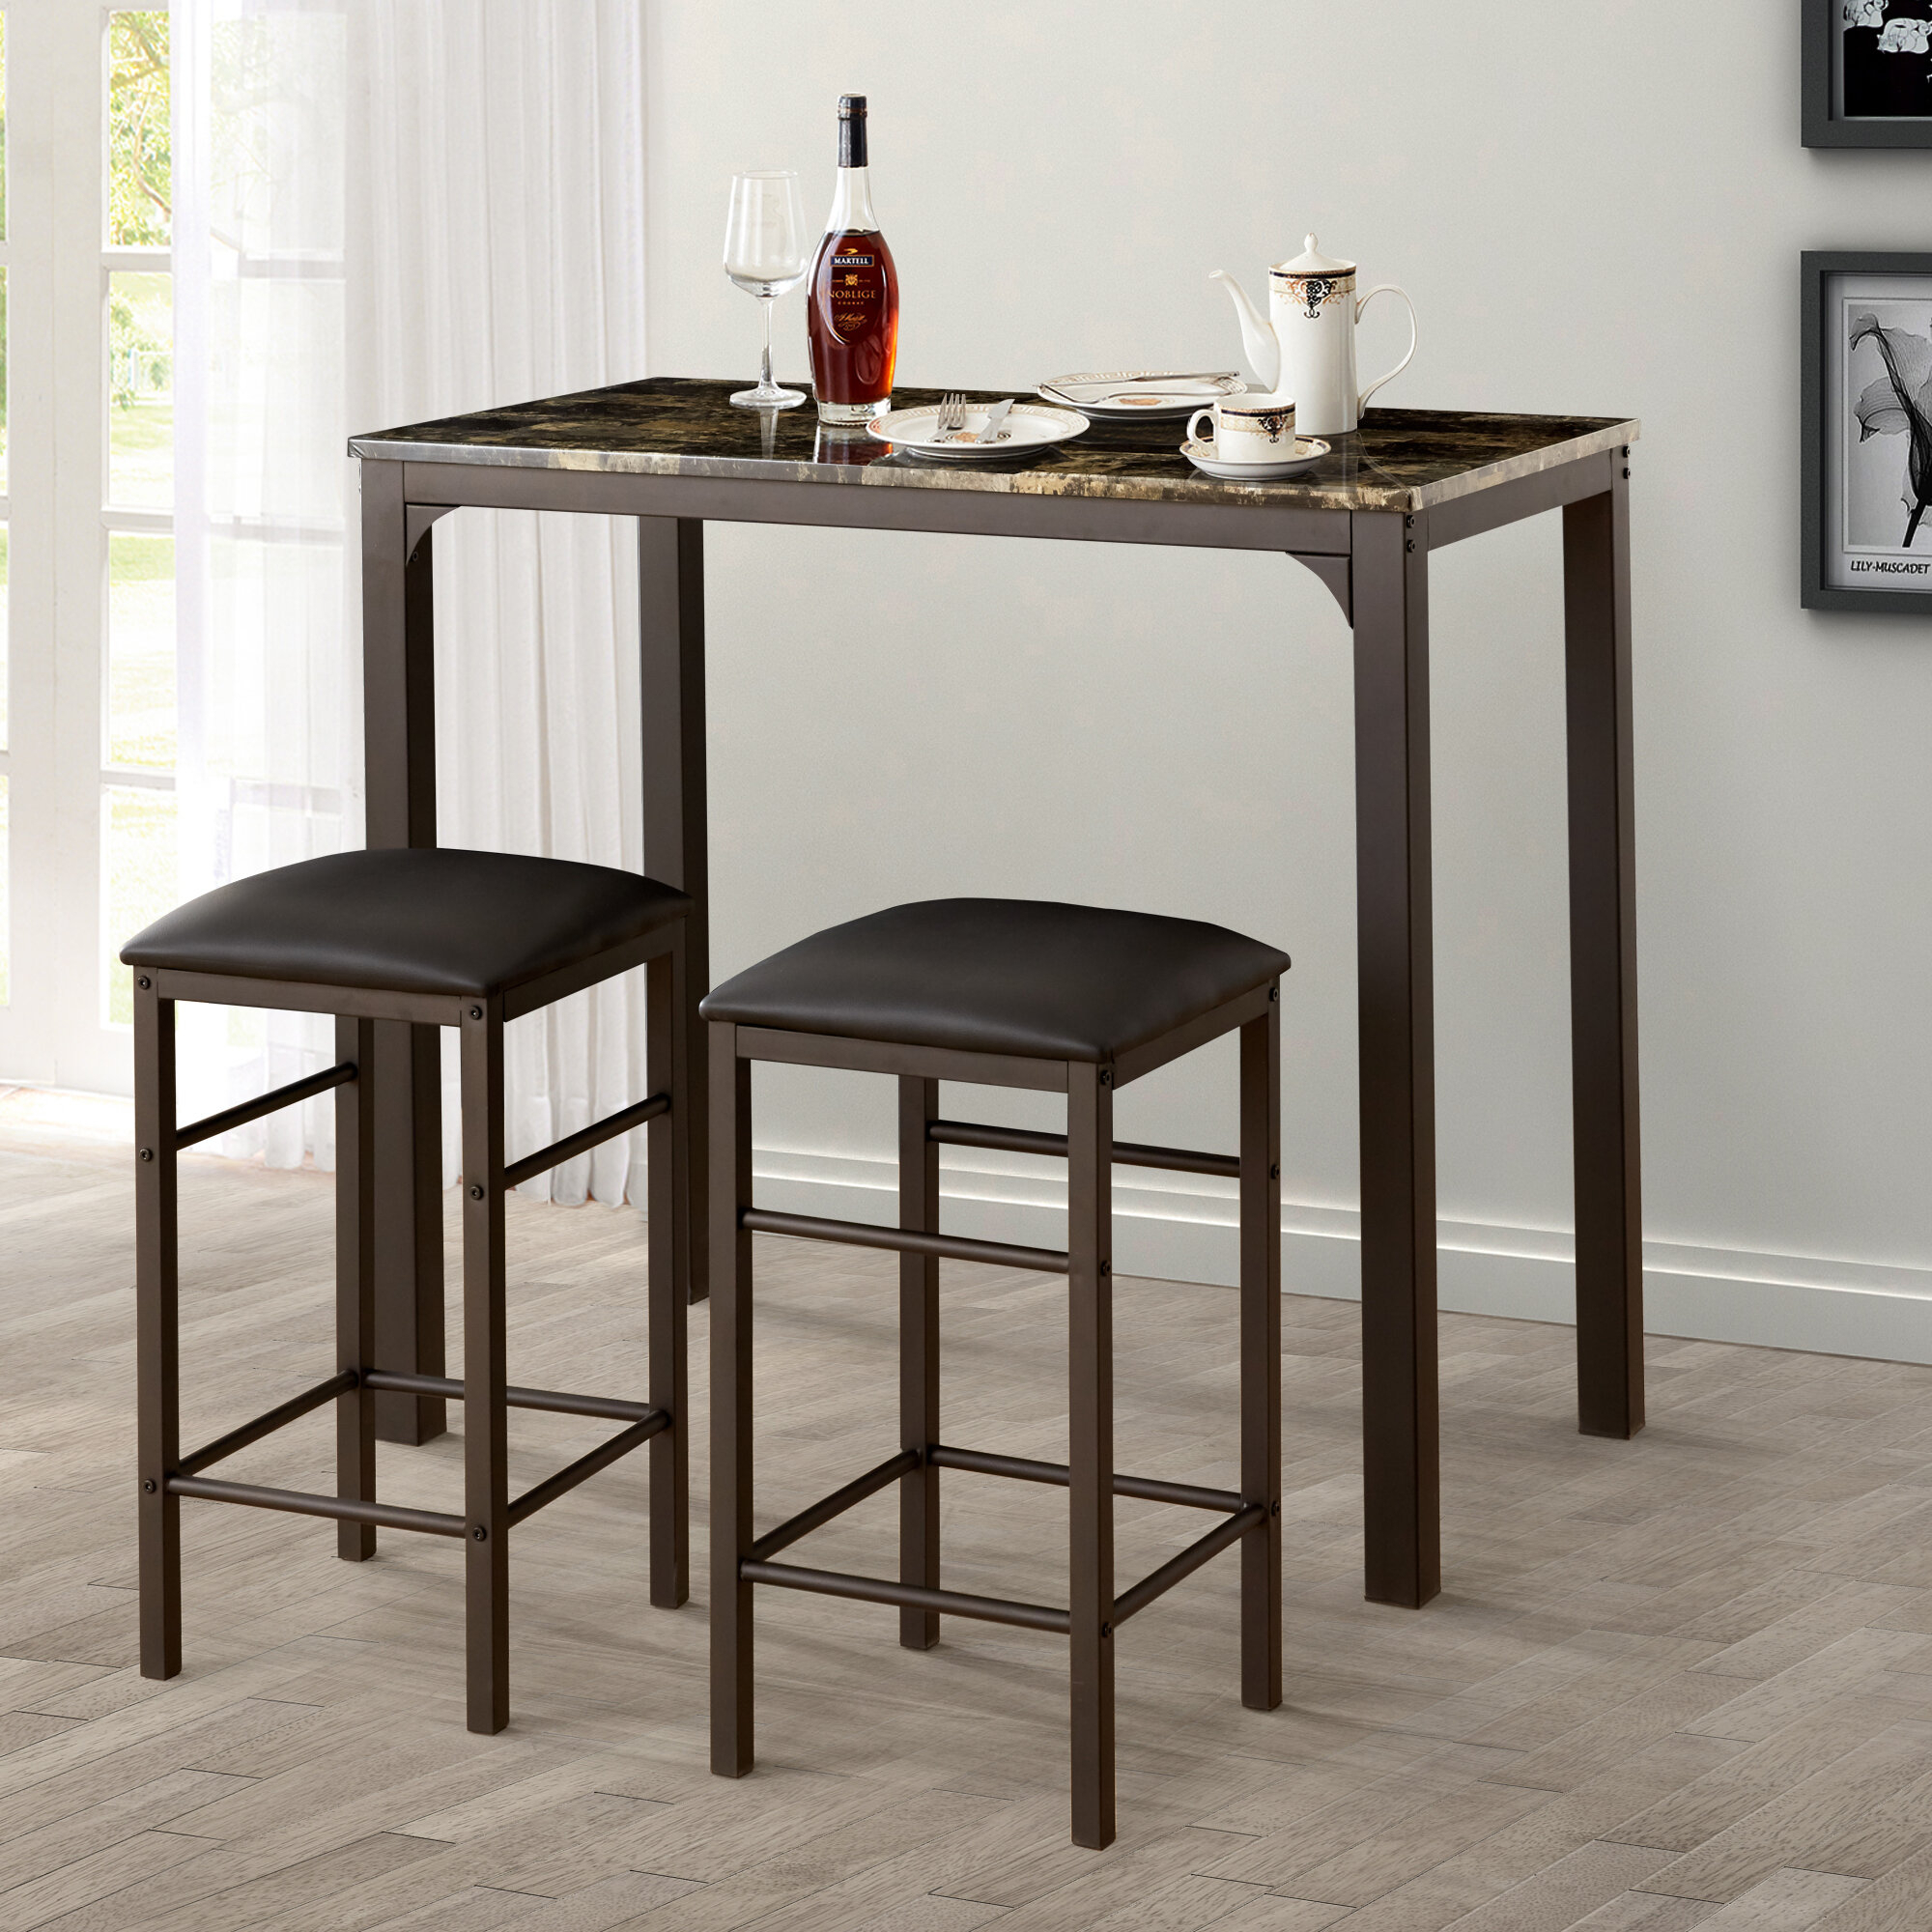 Lillard 3 Piece Breakfast Nook Dining Set Within Recent Tappahannock 3 Piece Counter Height Dining Sets (Photo 15 of 20)